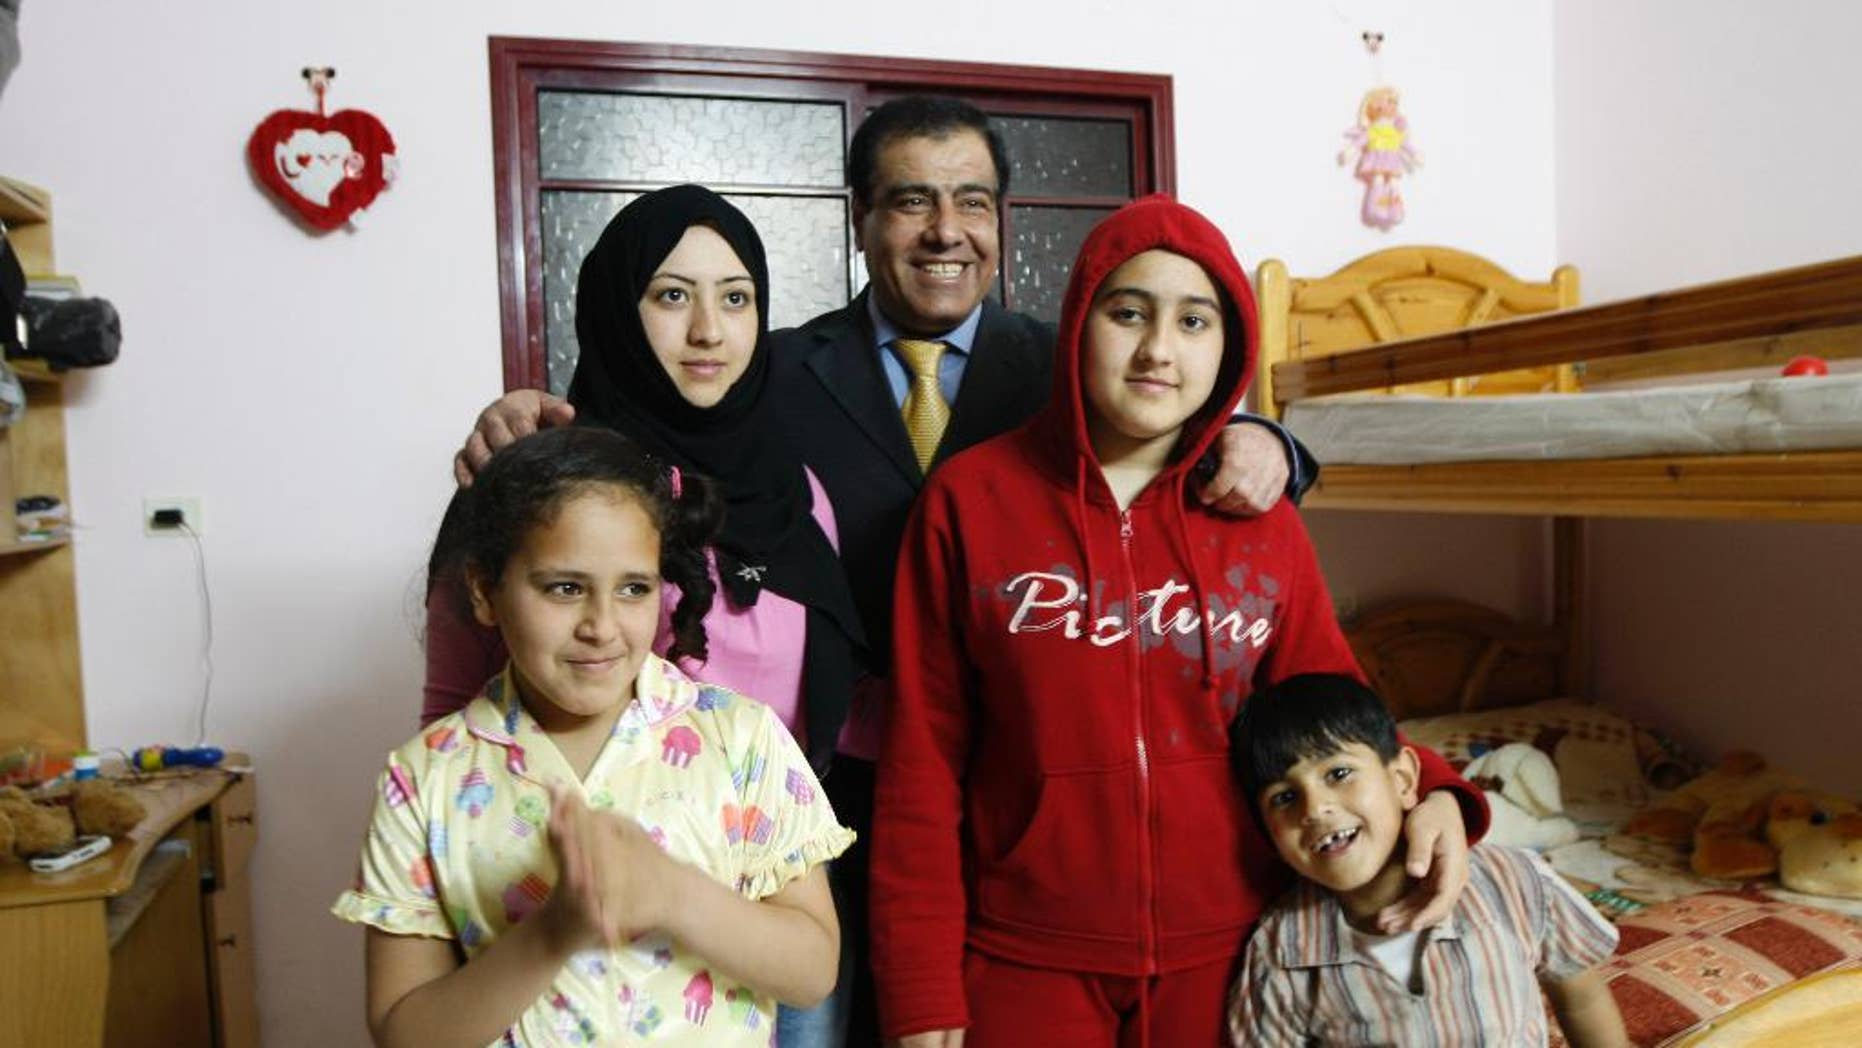 """FILE - In this May 7, 2009 file photo, Palestinian Dr. Izzeldin Abuelaish poses for a picture with his children in his house in Jebaliya, northern Gaza Strip. Dr. Abuelaish has made an emotional appeal to Israel to apologize for killing three of his daughters and a niece in a 2009 shelling attack on his Gaza home, speaking on the eve of a hearing in his civil suit, urged the state Tuesday to """"take responsibility."""" (AP Photo/Khalil Hamra, File)"""